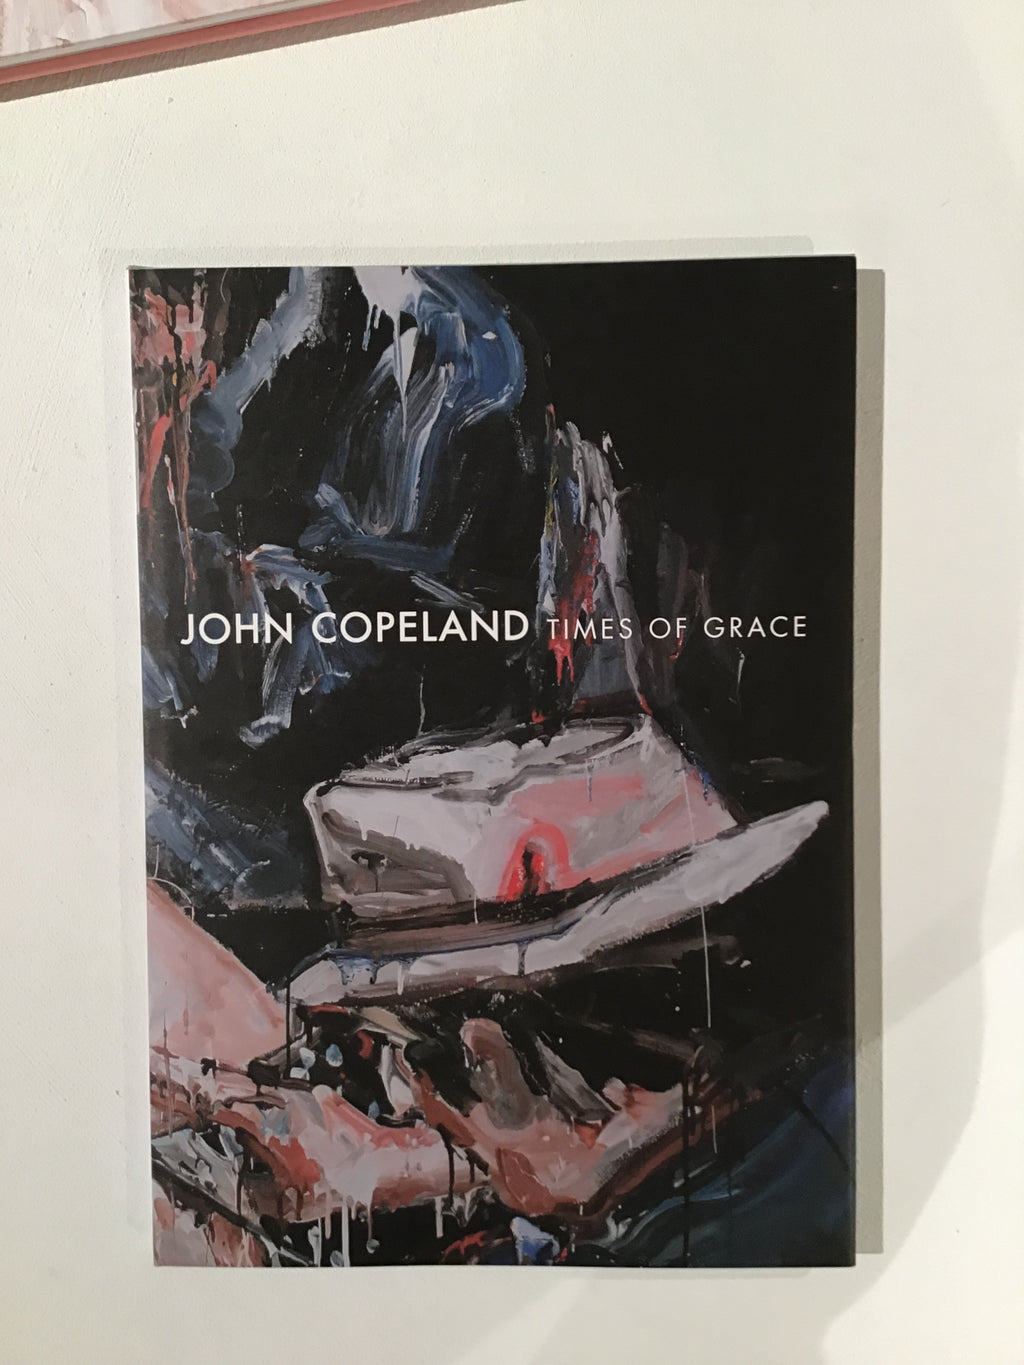 John Copeland - Times of grace signed